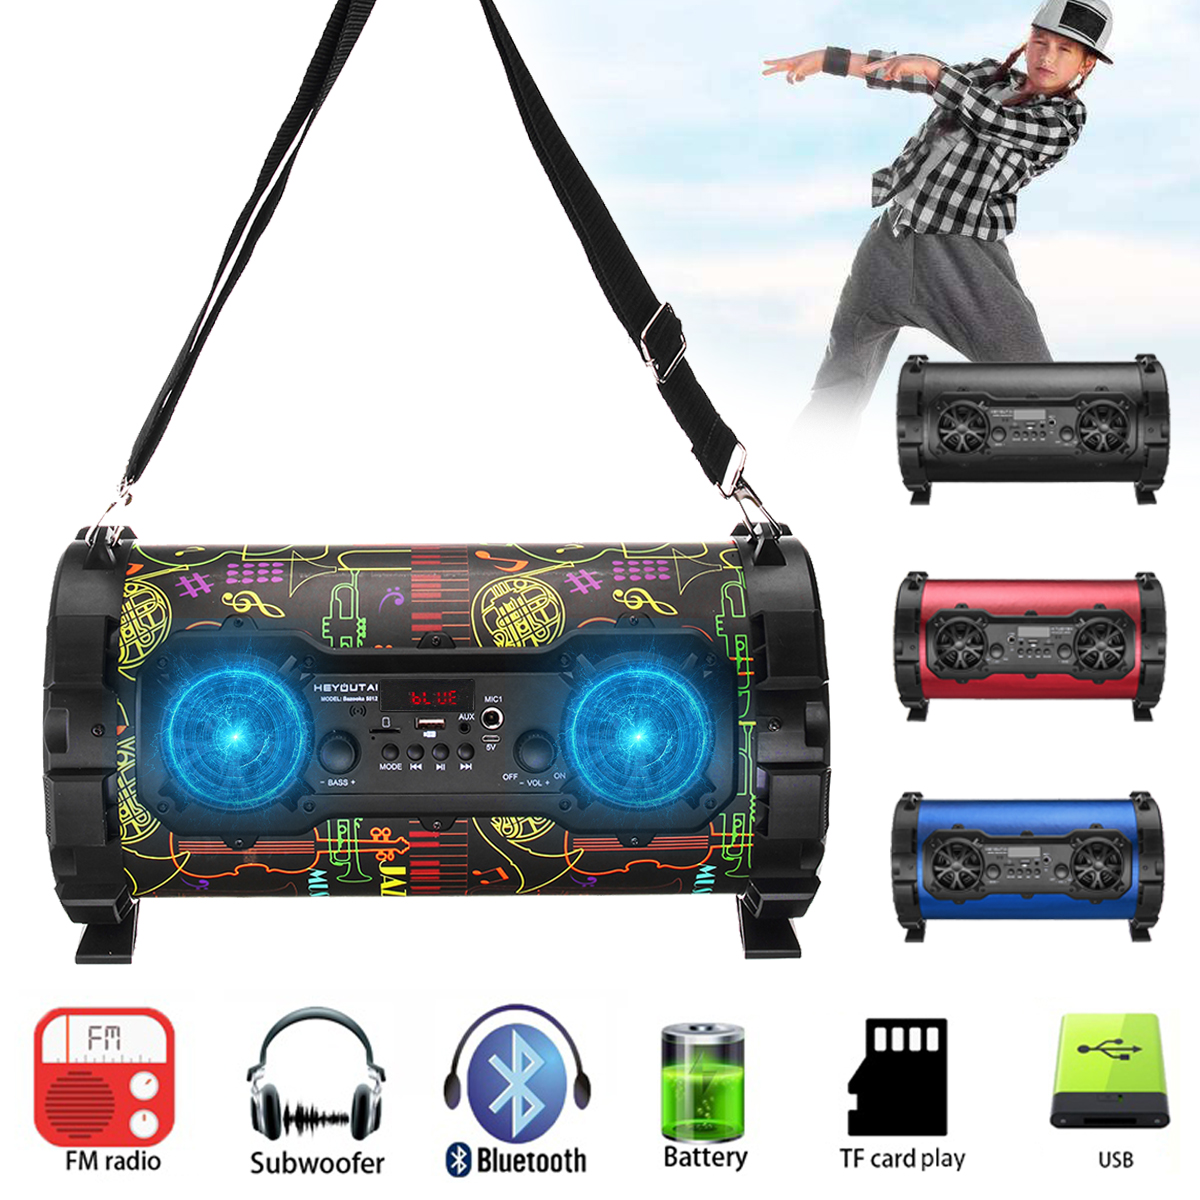 15W Wireless bluetooth Speaker Stereo Bass Portable Loudspeaker Sound System AUX/USB/TF Card/FM Radio Outdoor Speaker Subwoofer15W Wireless bluetooth Speaker Stereo Bass Portable Loudspeaker Sound System AUX/USB/TF Card/FM Radio Outdoor Speaker Subwoofer